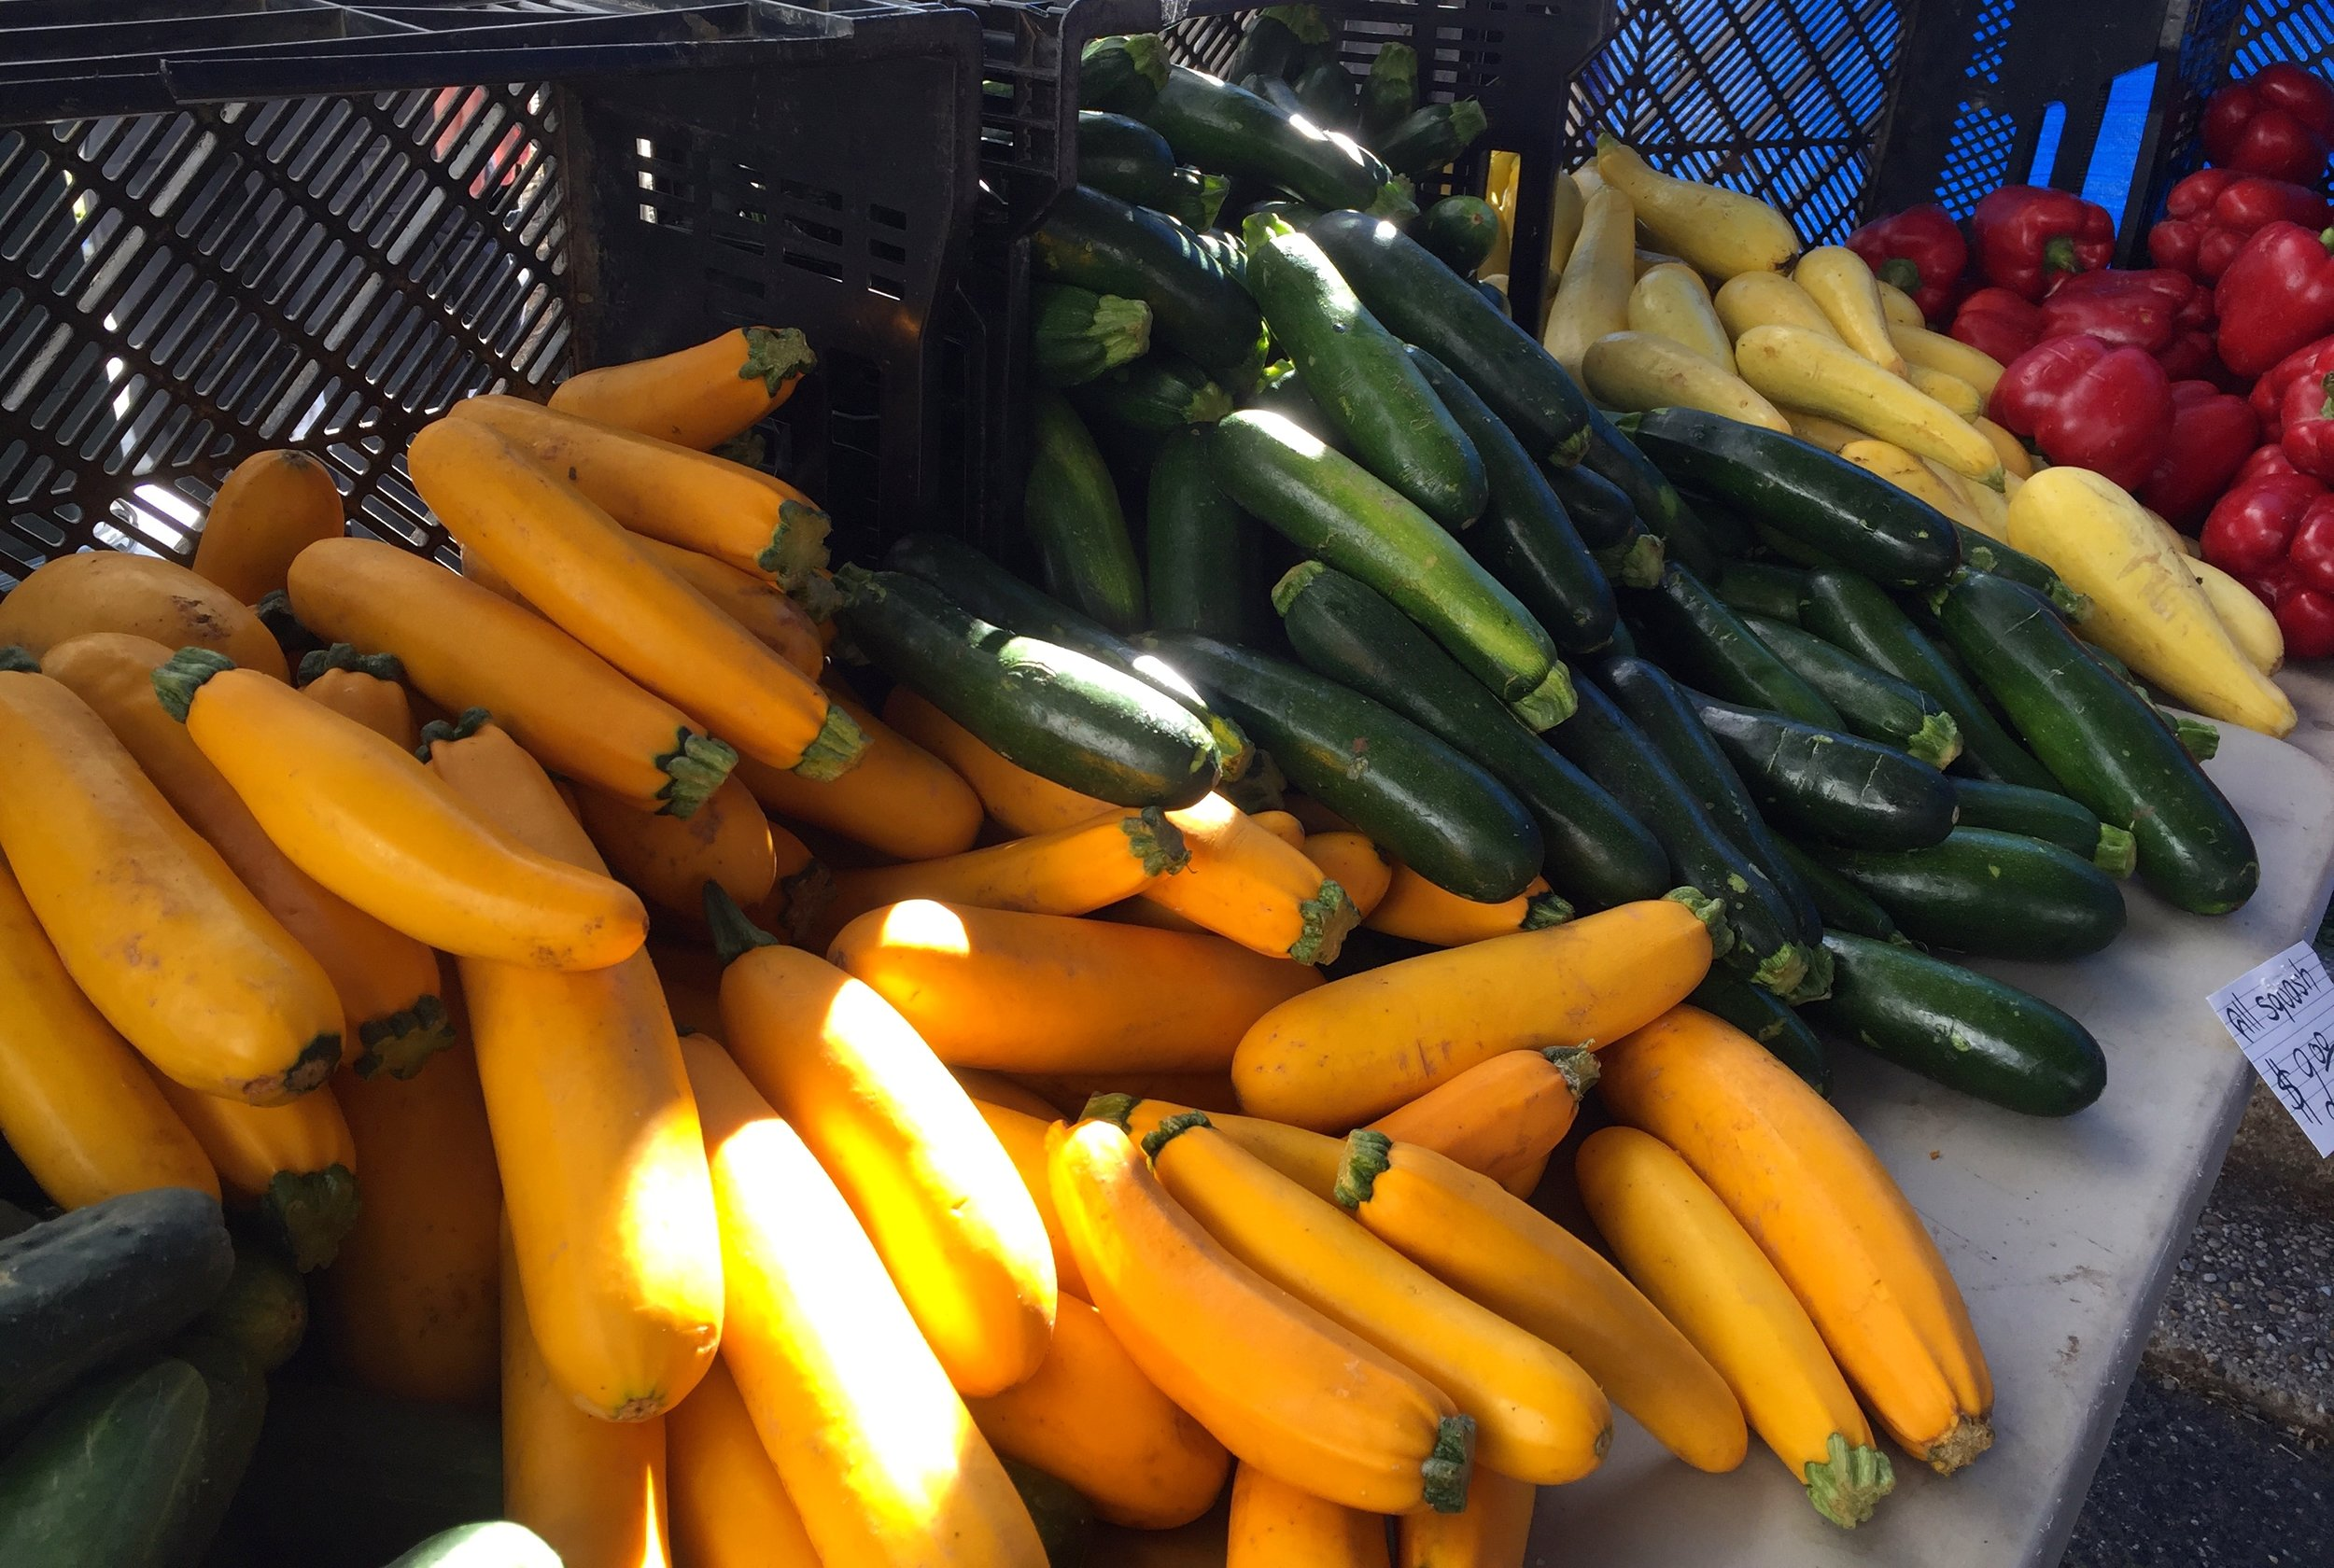 Gold and Green Zucchini at the Palisades Market, Washington DC